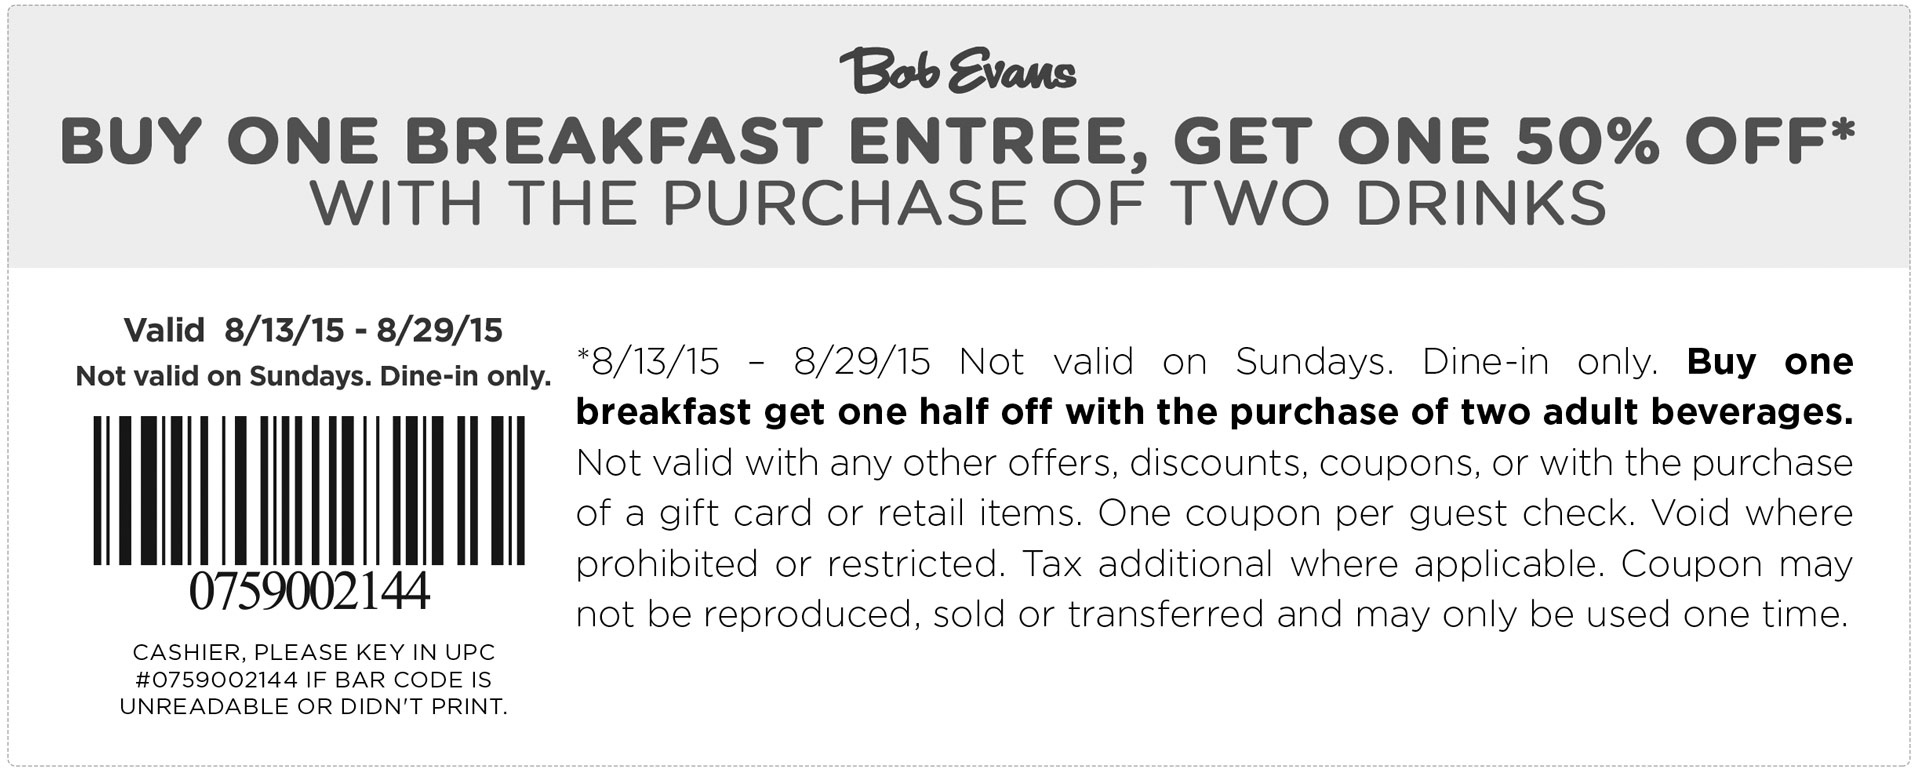 Bob Evans Coupon January 2018 Second breakfast 50% off at Bob Evans